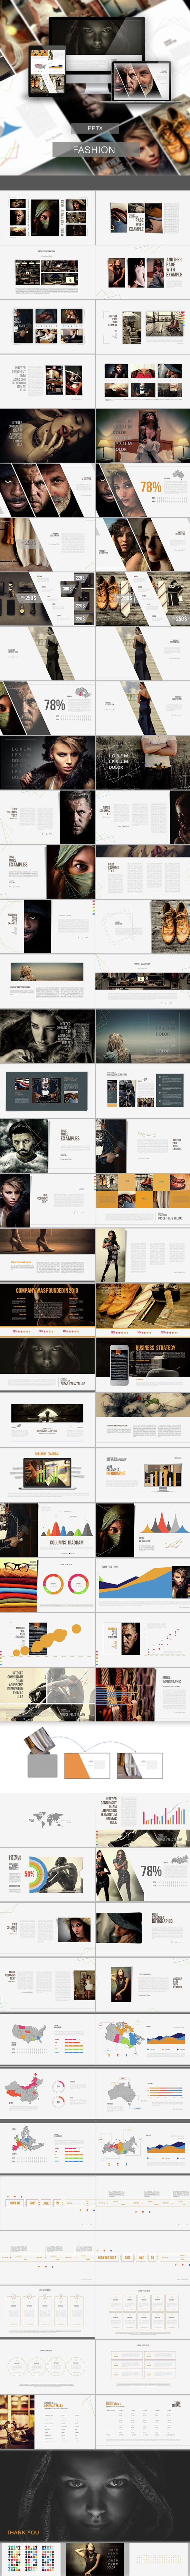 Fashion PowerPoint Presentation Template. Download here: http://graphicriver.net/item/fashion-powerpoint-presentation/15143139?ref=ksioks